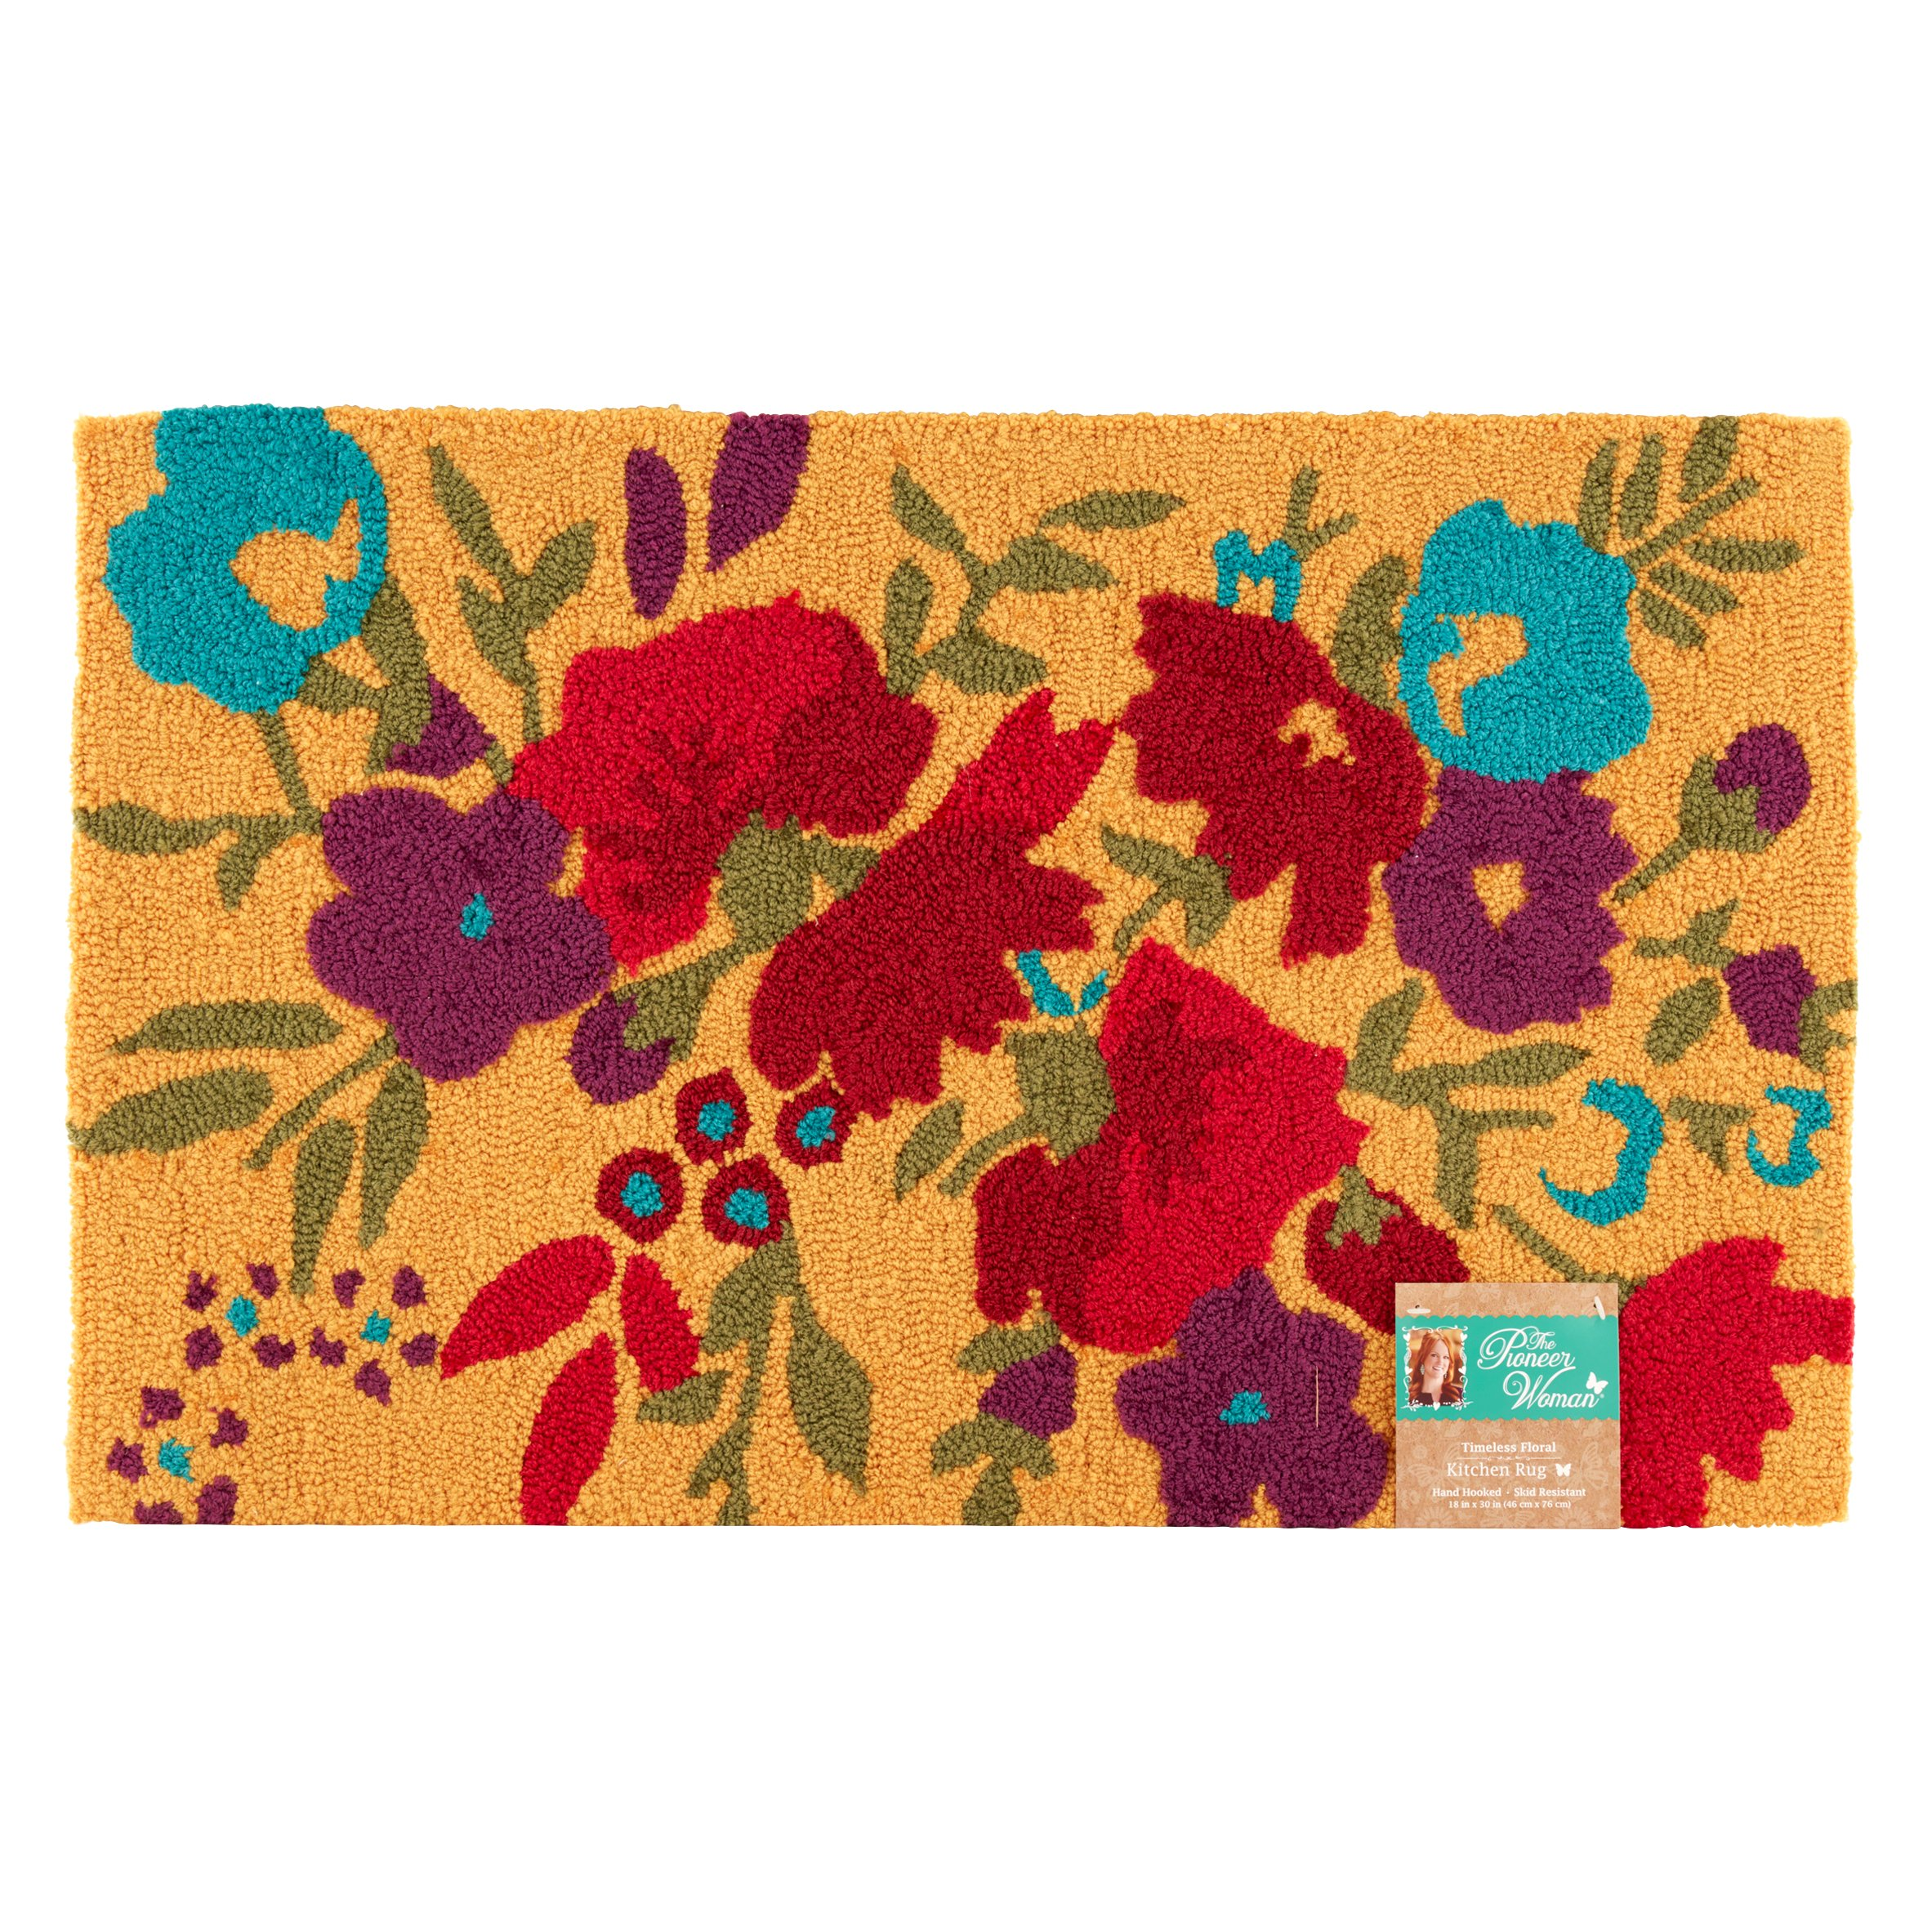 The Pioneer Woman Timeless Floral Kitchen Rug